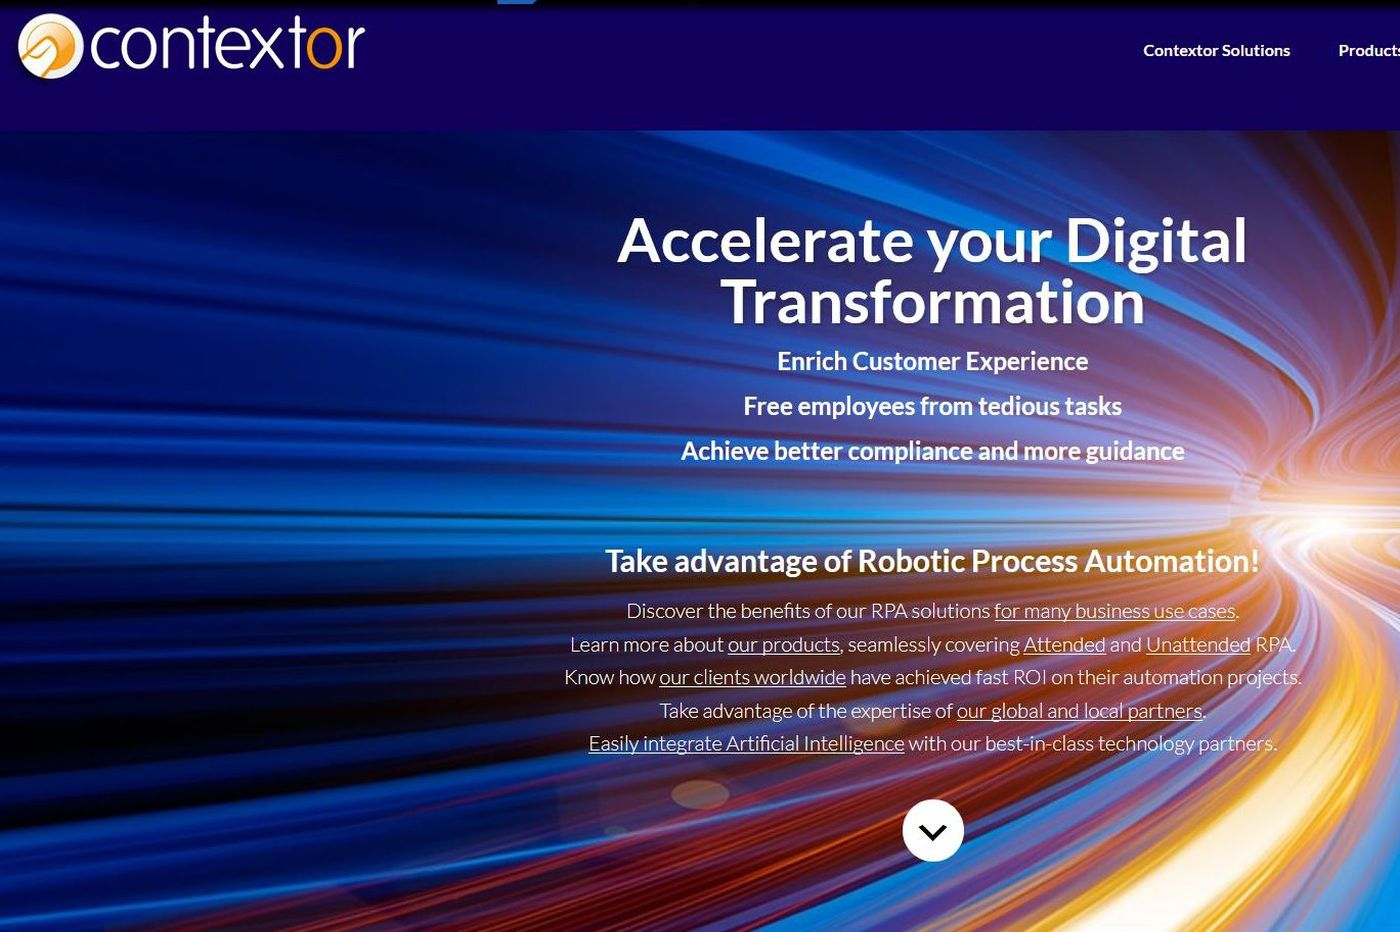 SAP adds Contextor, robotic process automation